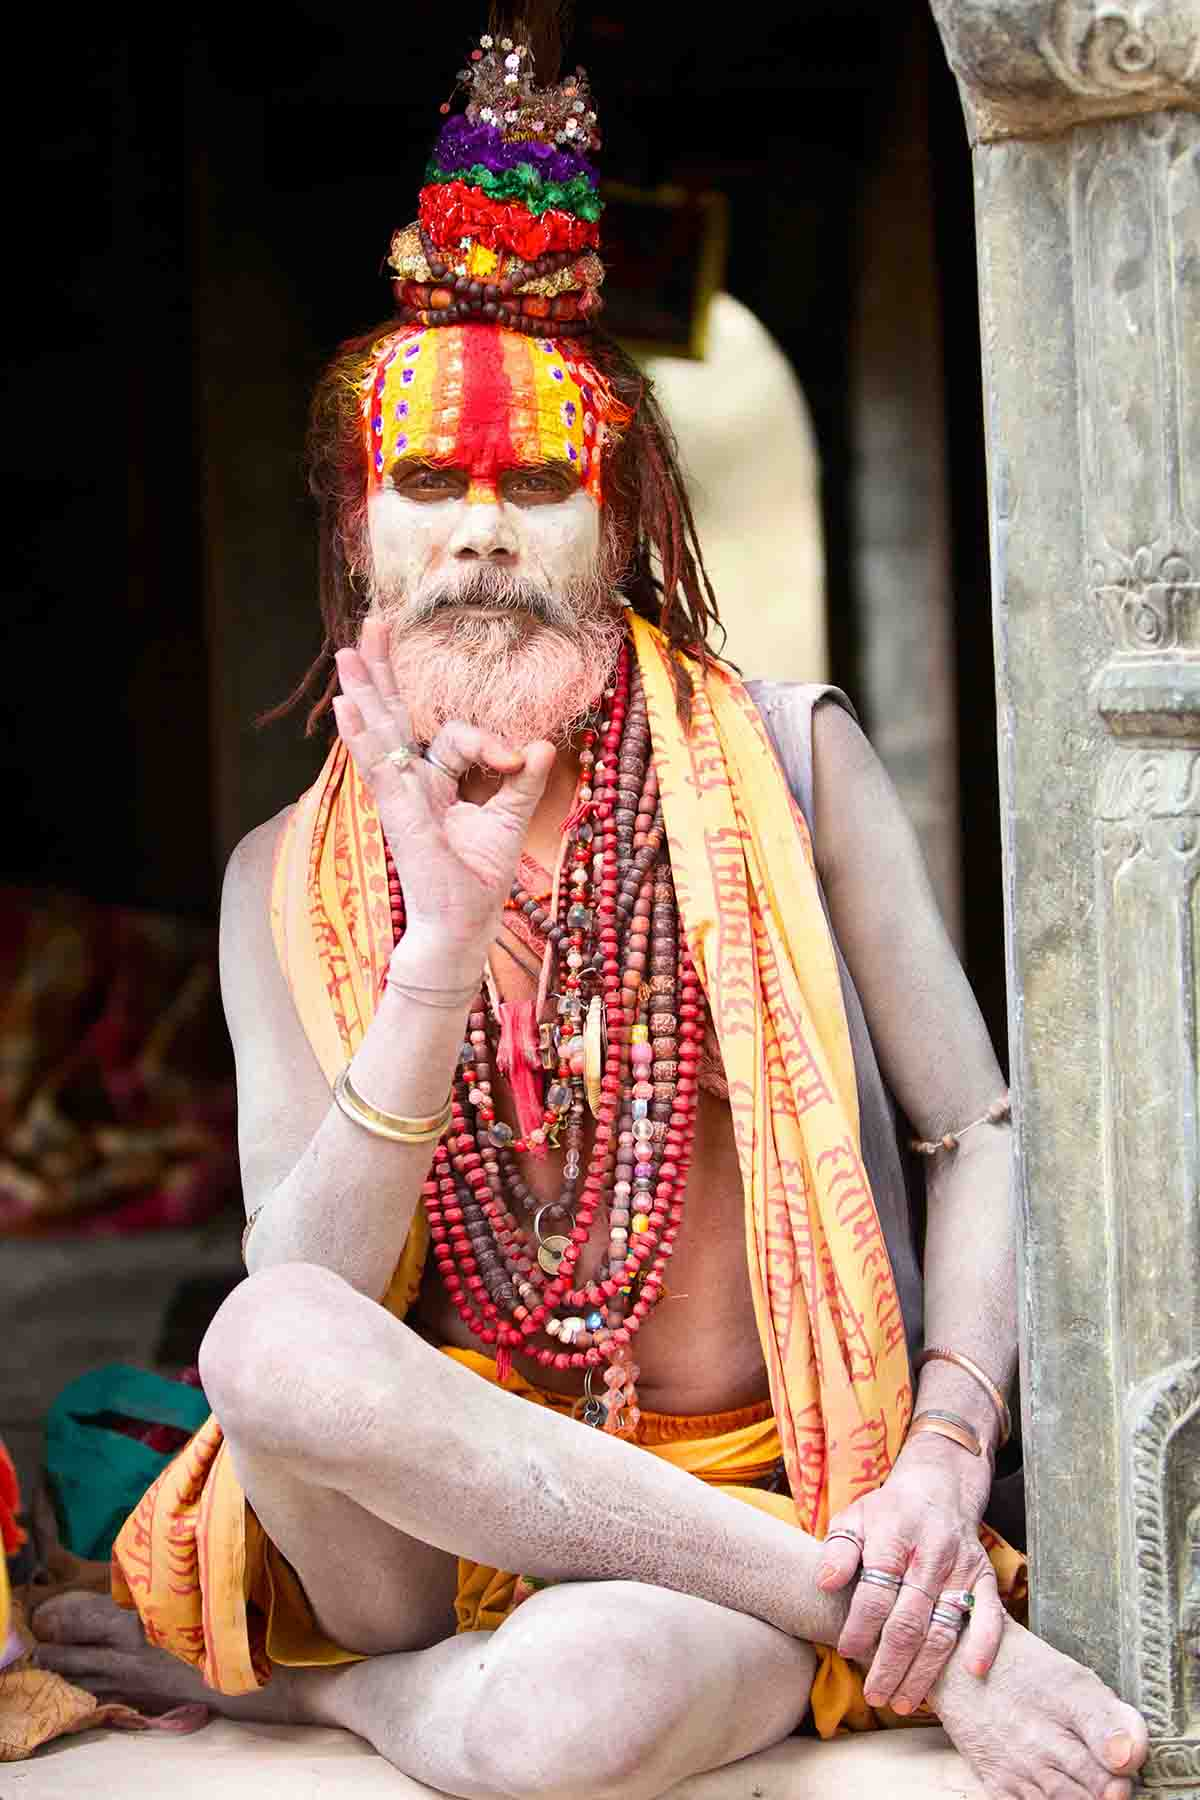 KATHMANDU, NEPAL - MAY 04: Holy Sadhu man with beard and traditional face paint sitting in Pashupatinath Temple on May 04, 2014 in Nepal, Kathmandu.